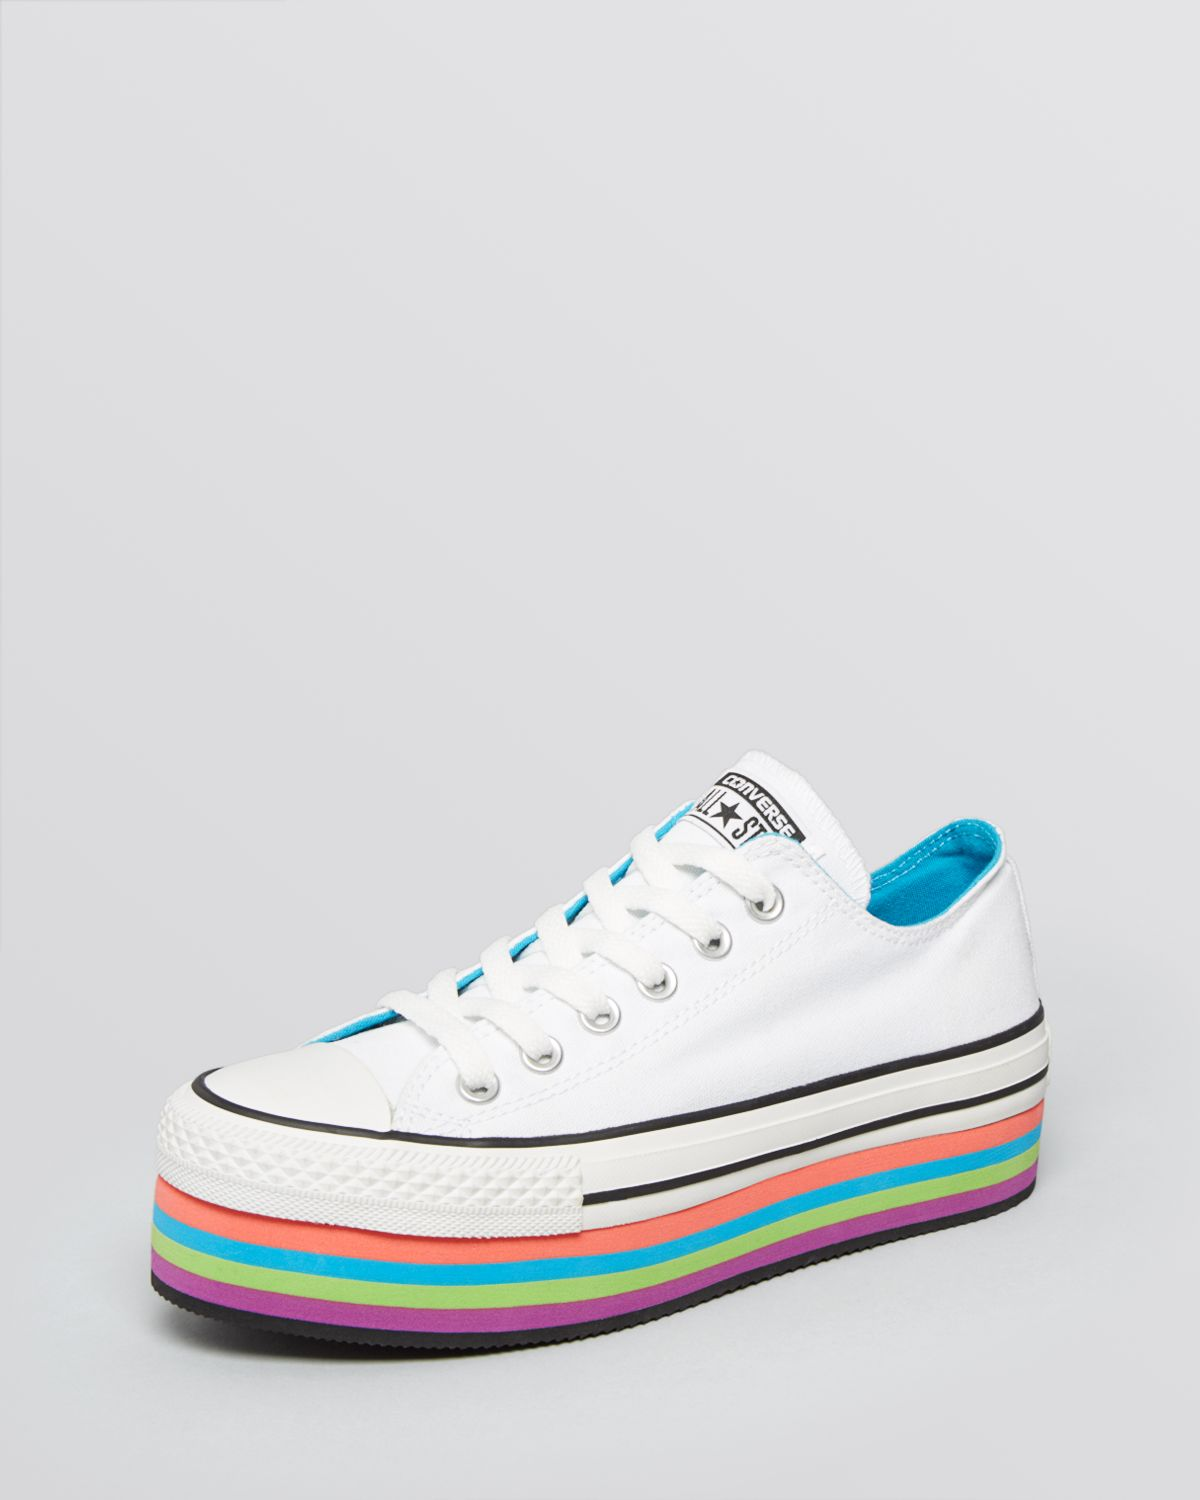 converse lace up platform sneakers all multicolor in